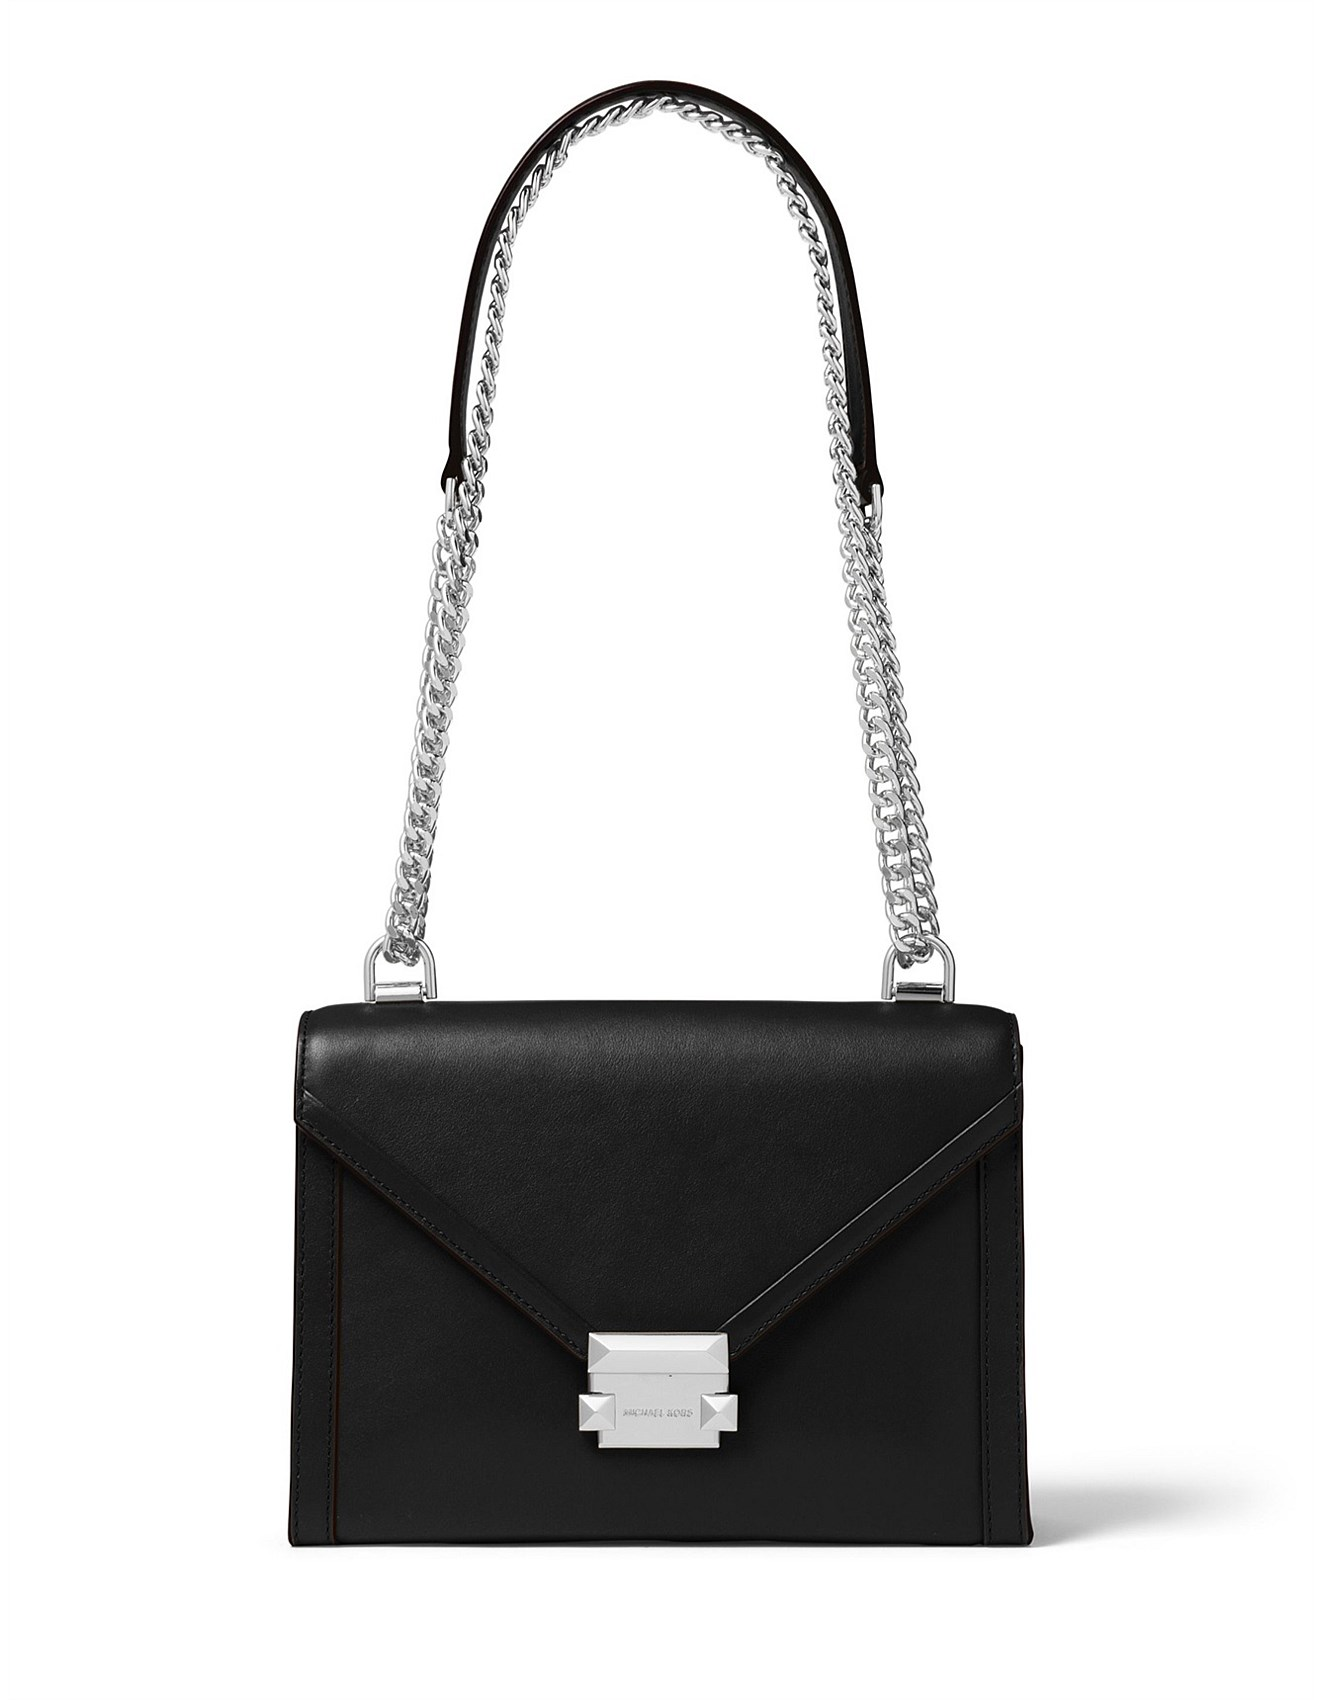 528f97bd1a93 Women - Whitney Large Leather Convertible Shoulder Bag